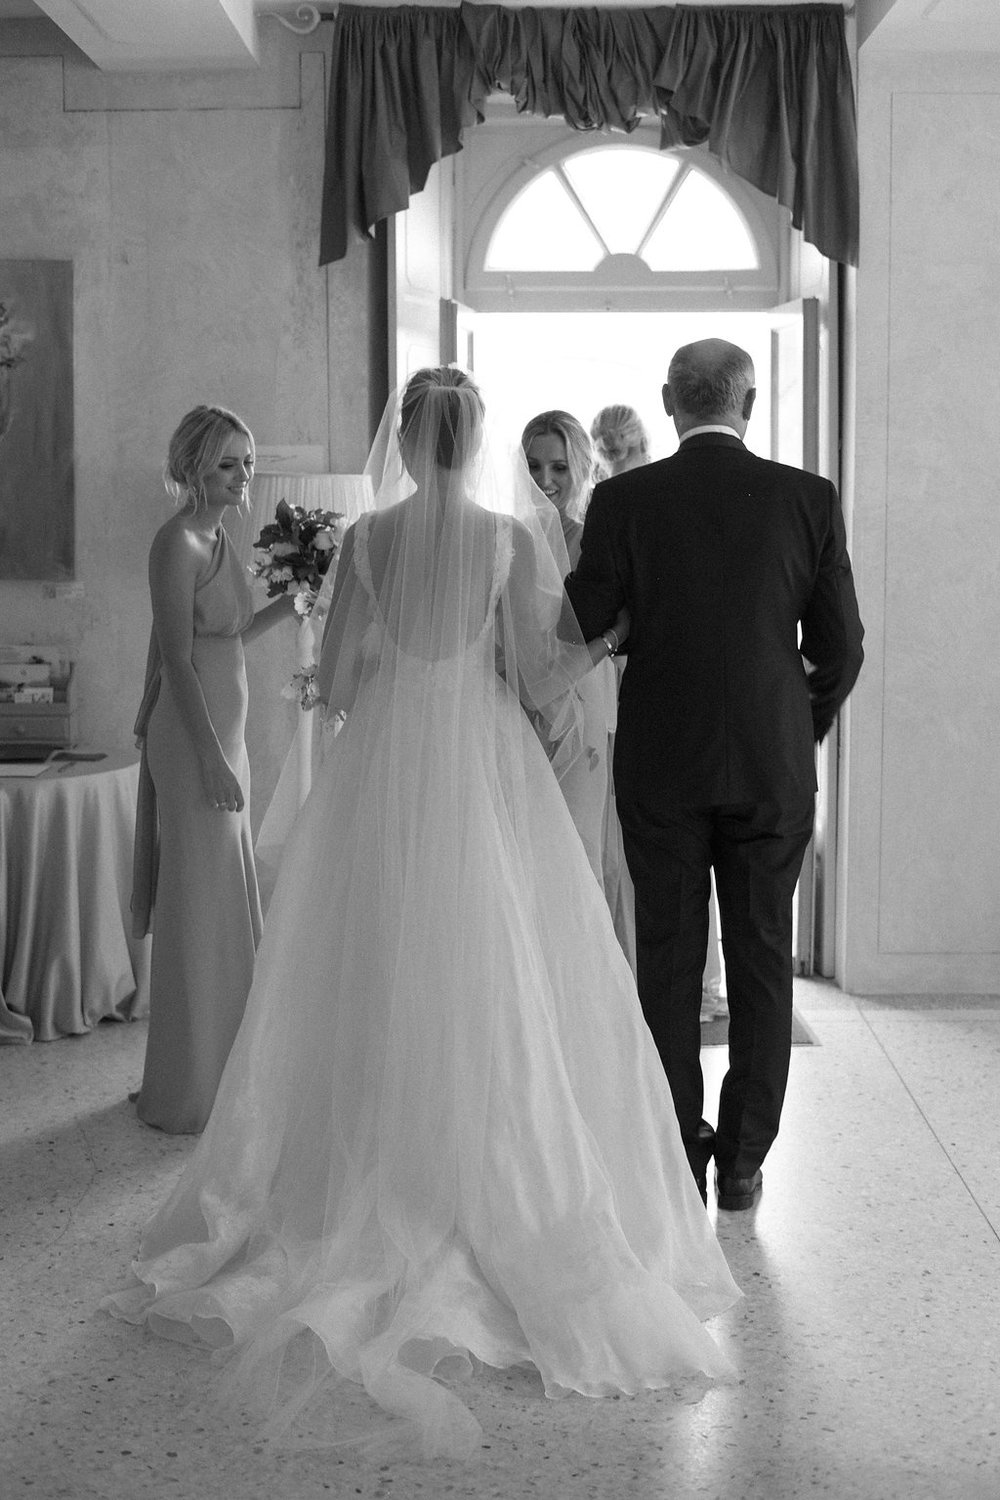 LakeComoVillaReginaTeodalindaWeddingKatieGrantPhoto(51of202).jpg